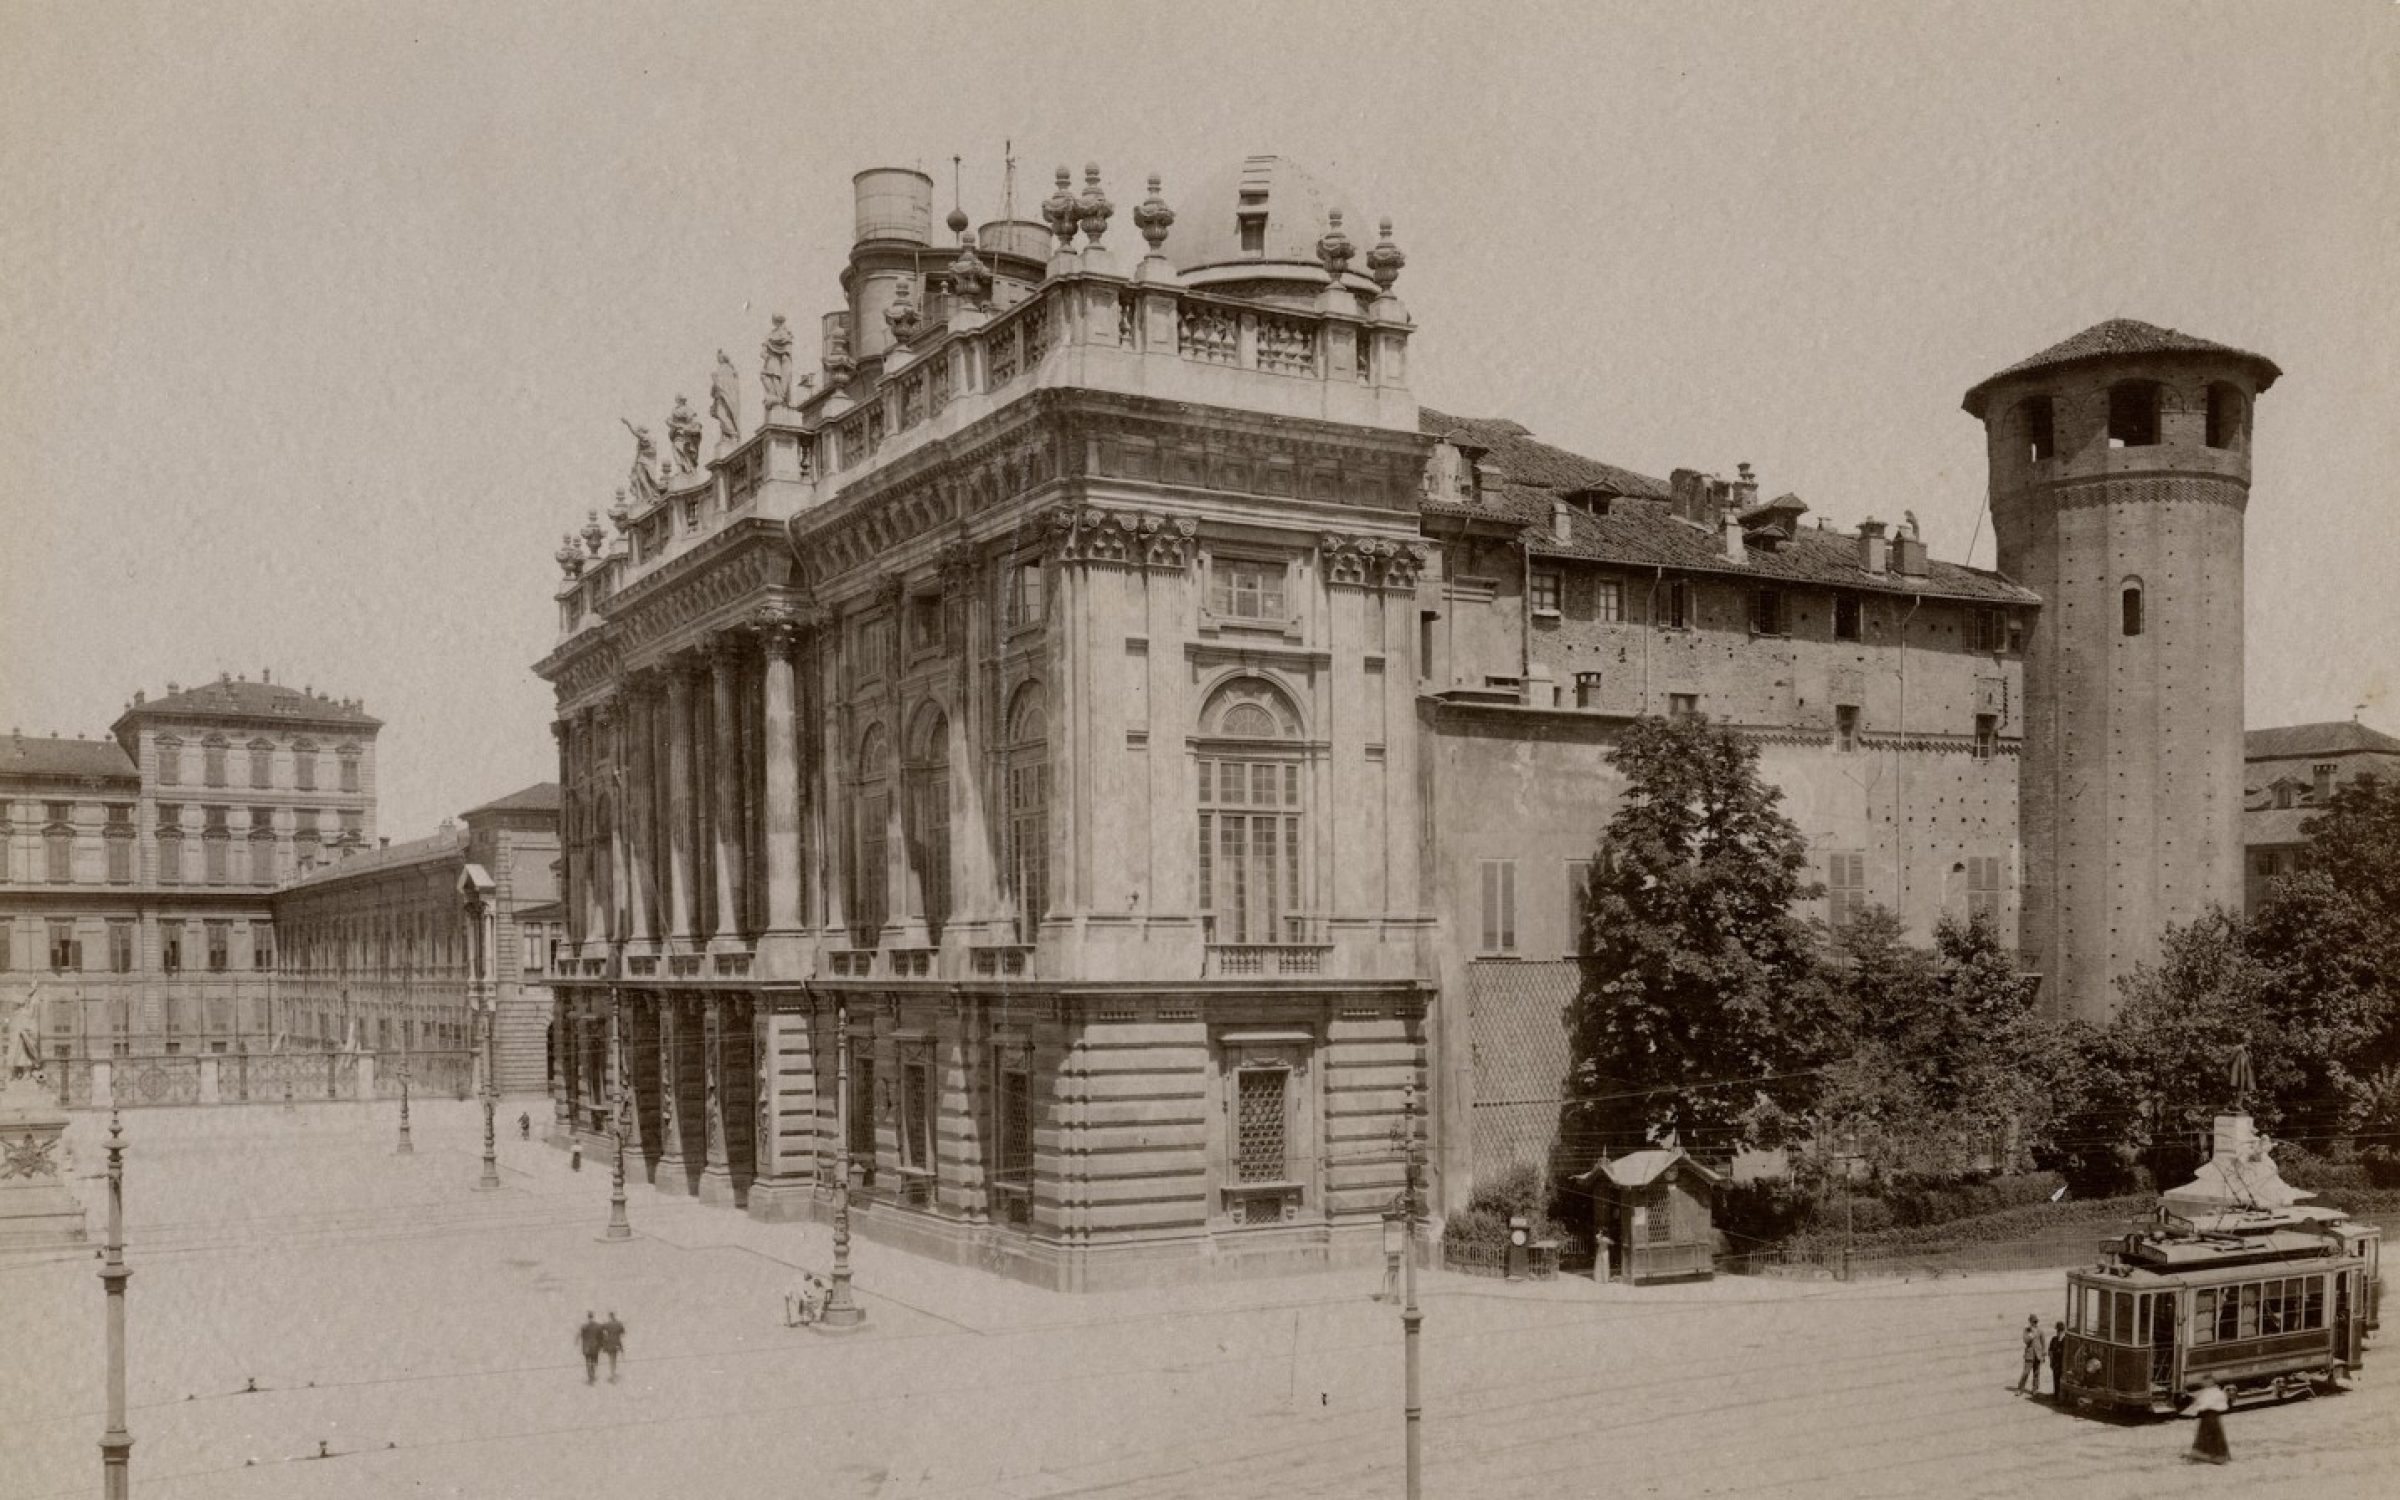 A view of the Palazzo Madama in Turin, in the early 20th century. Credit: Getty Images.